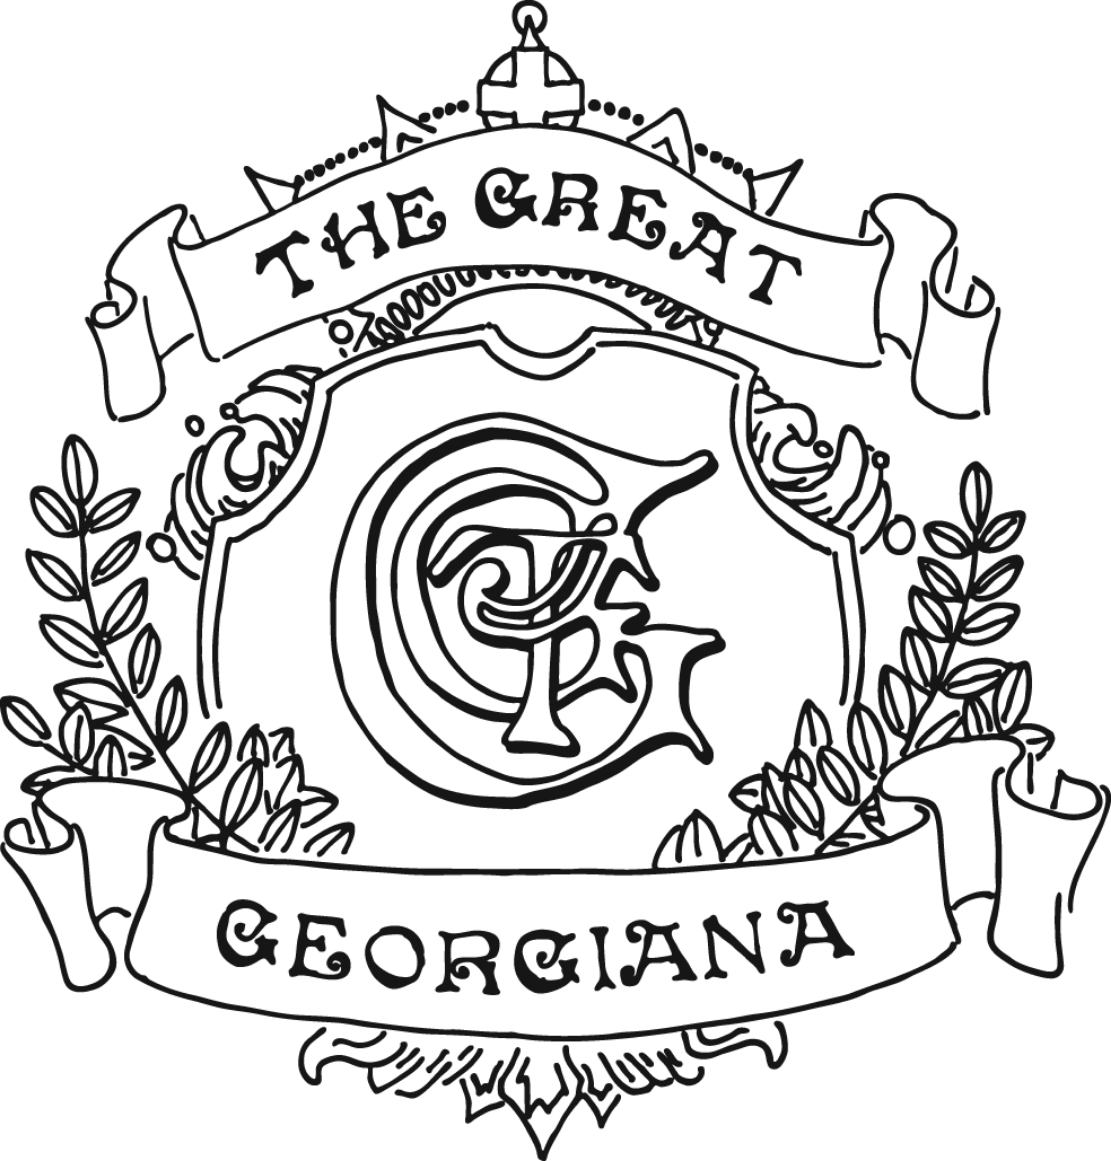 The Great Georgiana